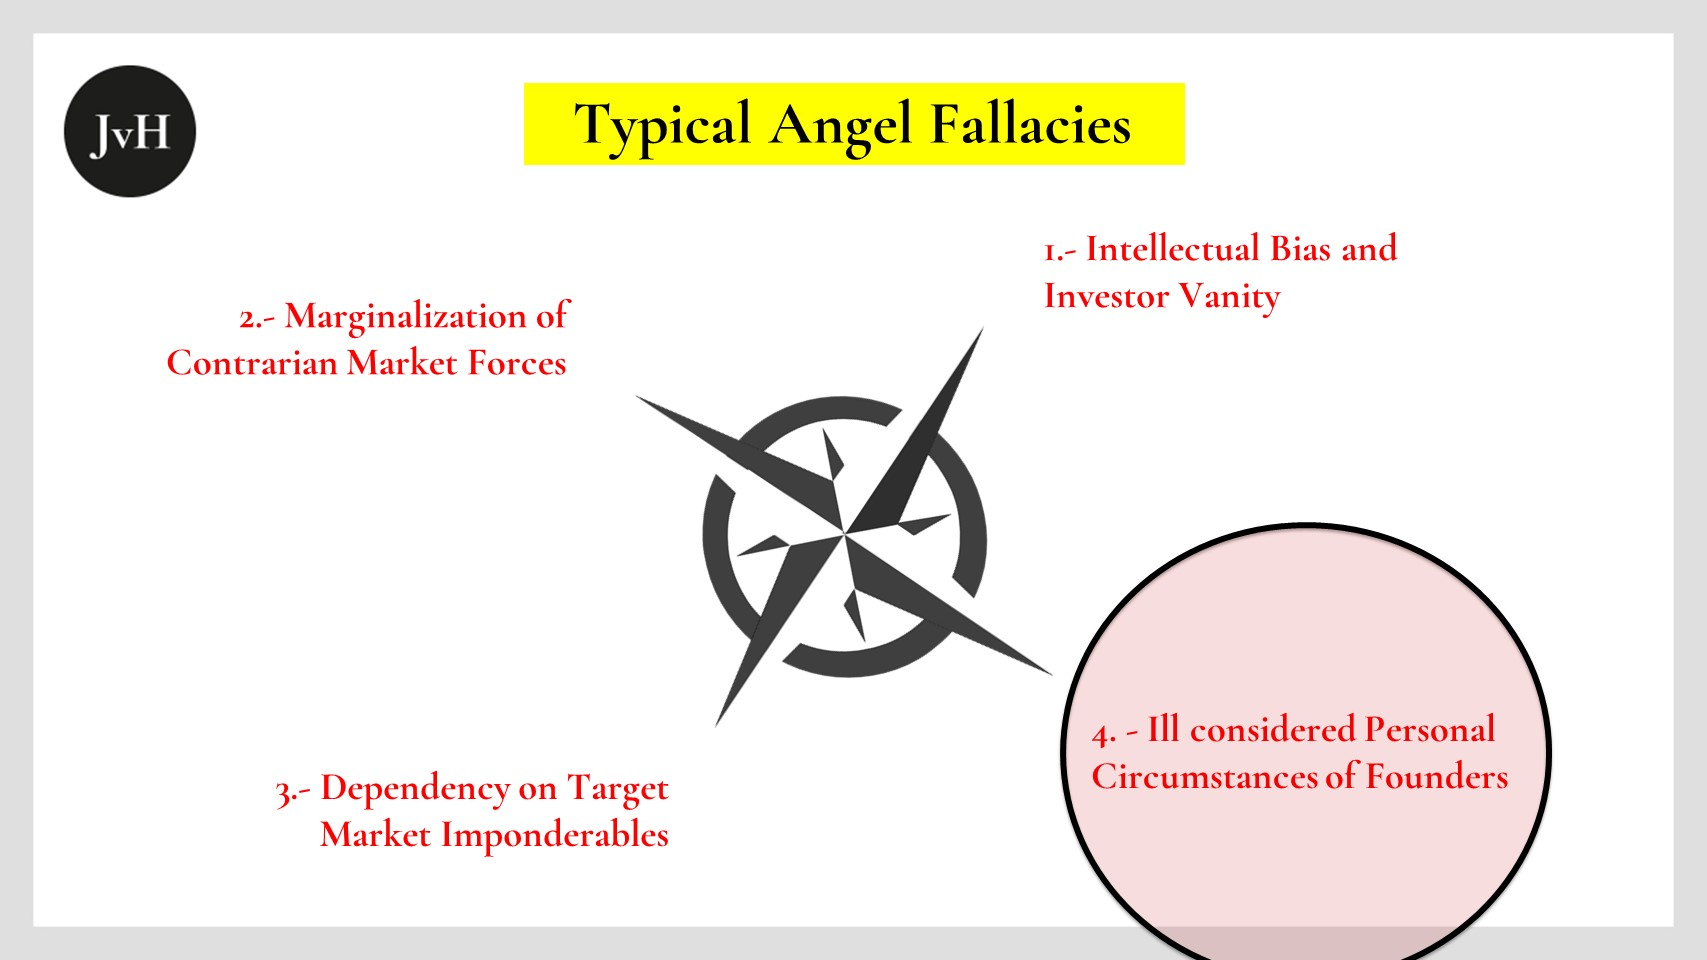 Angel Fallacies 4.0: Neglect of Founders' Personal Circumstances